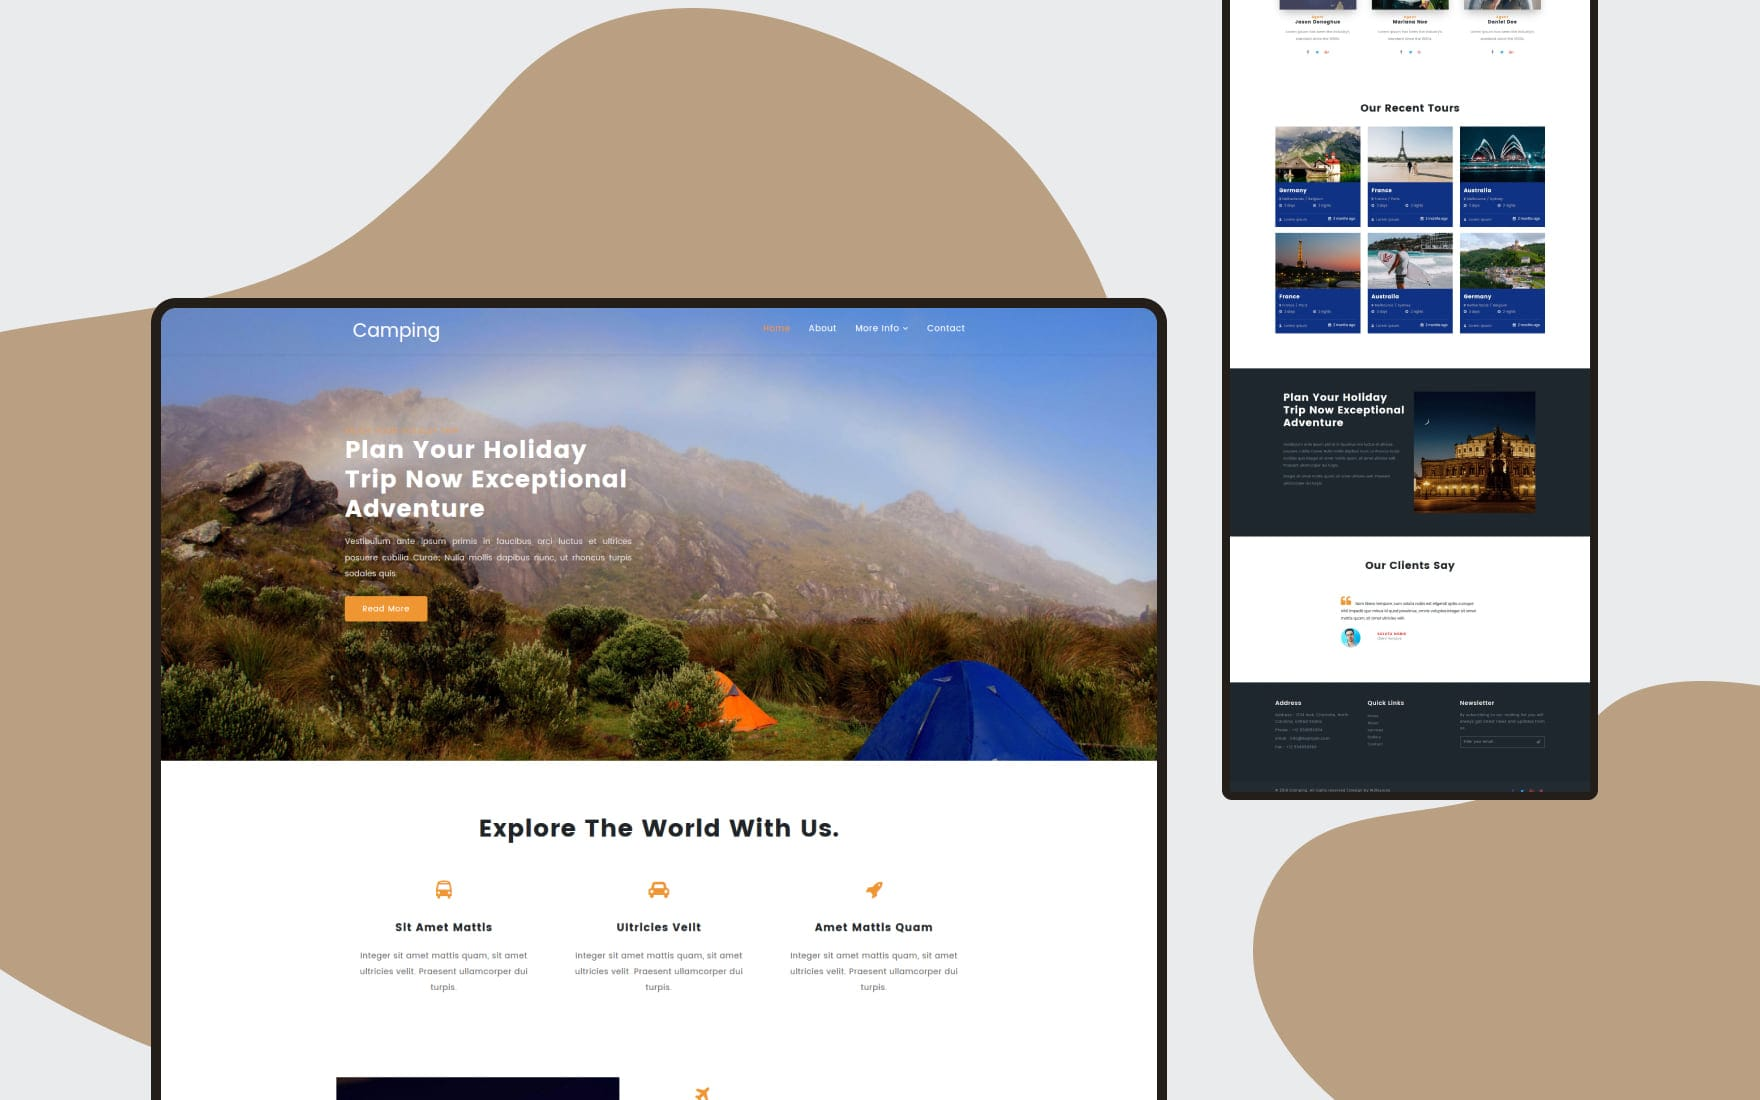 Camping a Travel Category Bootstrap Responsive Web Template